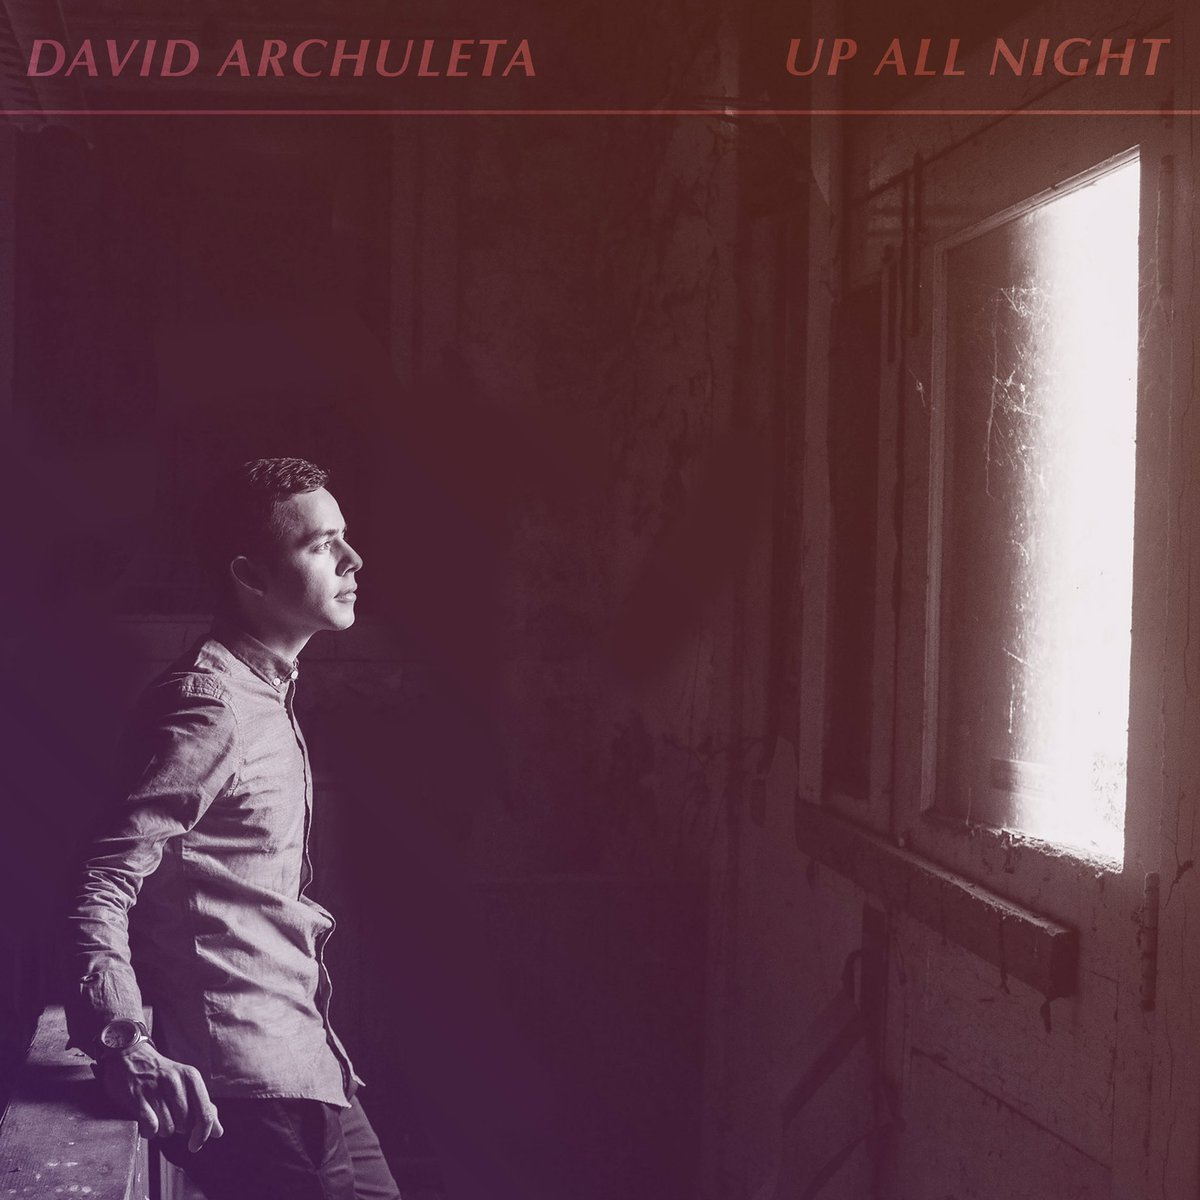 david-archuleta-up-all-night-single-cover-1